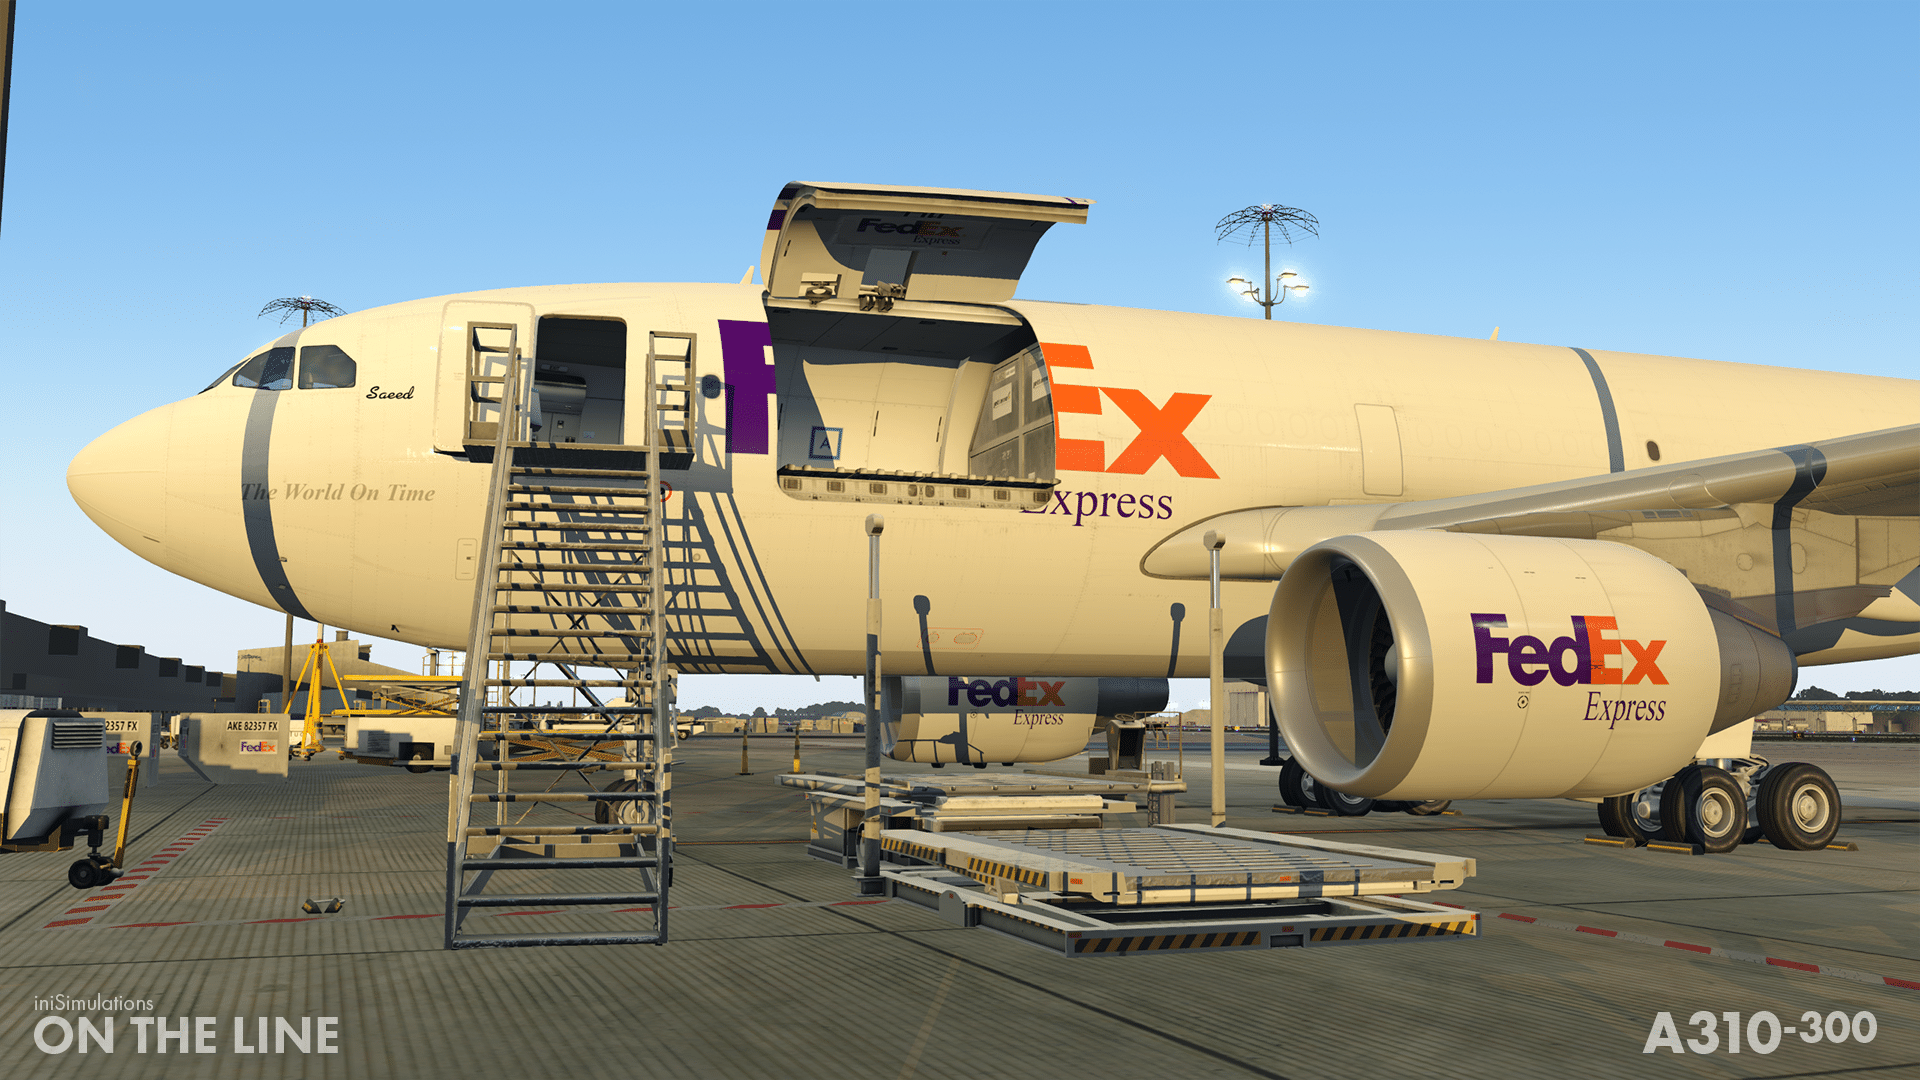 a310-store-page-pic-7